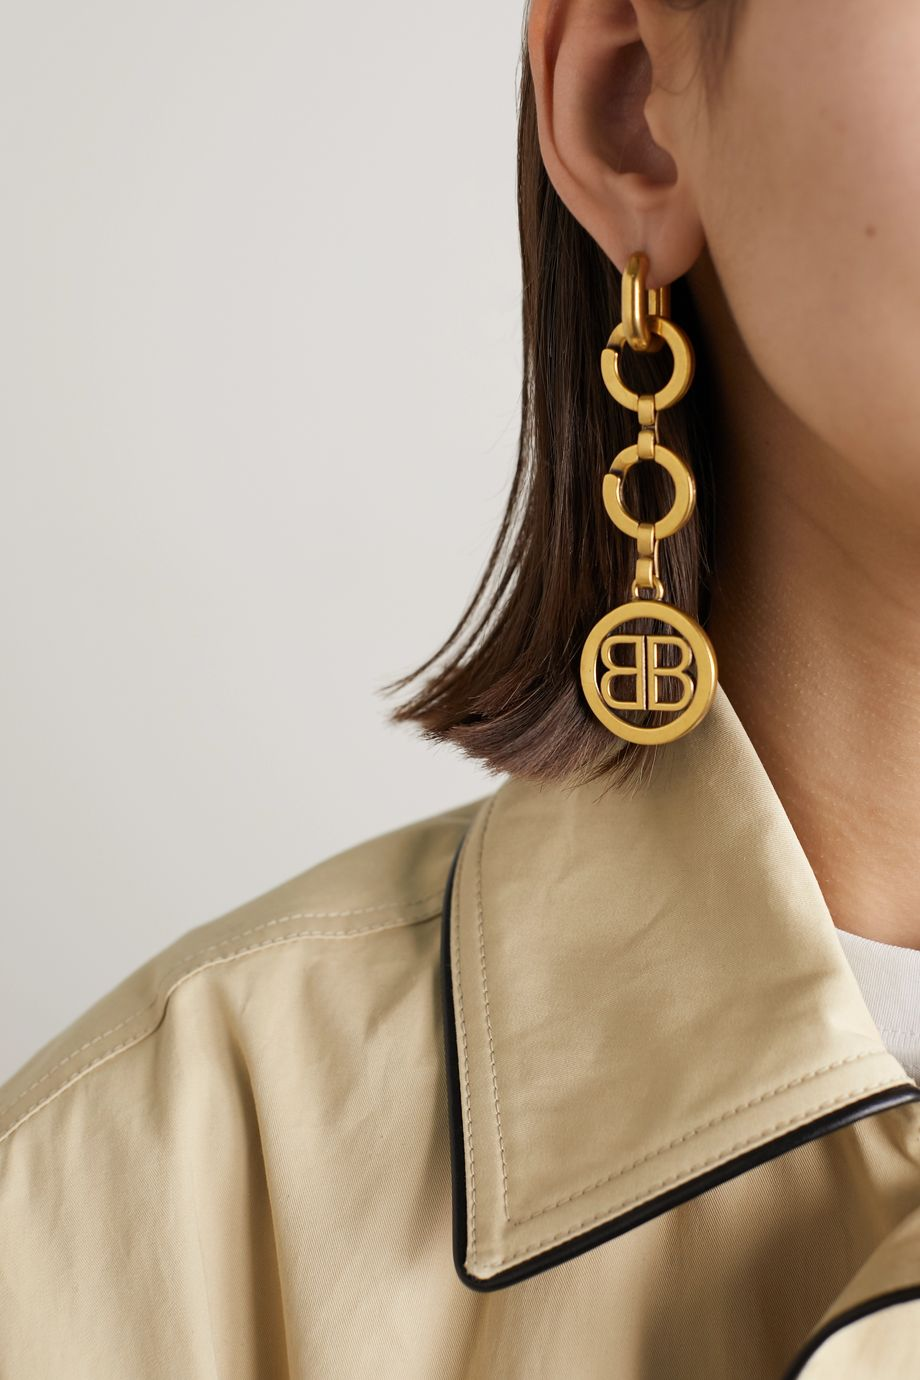 Balenciaga Time gold-tone earrings